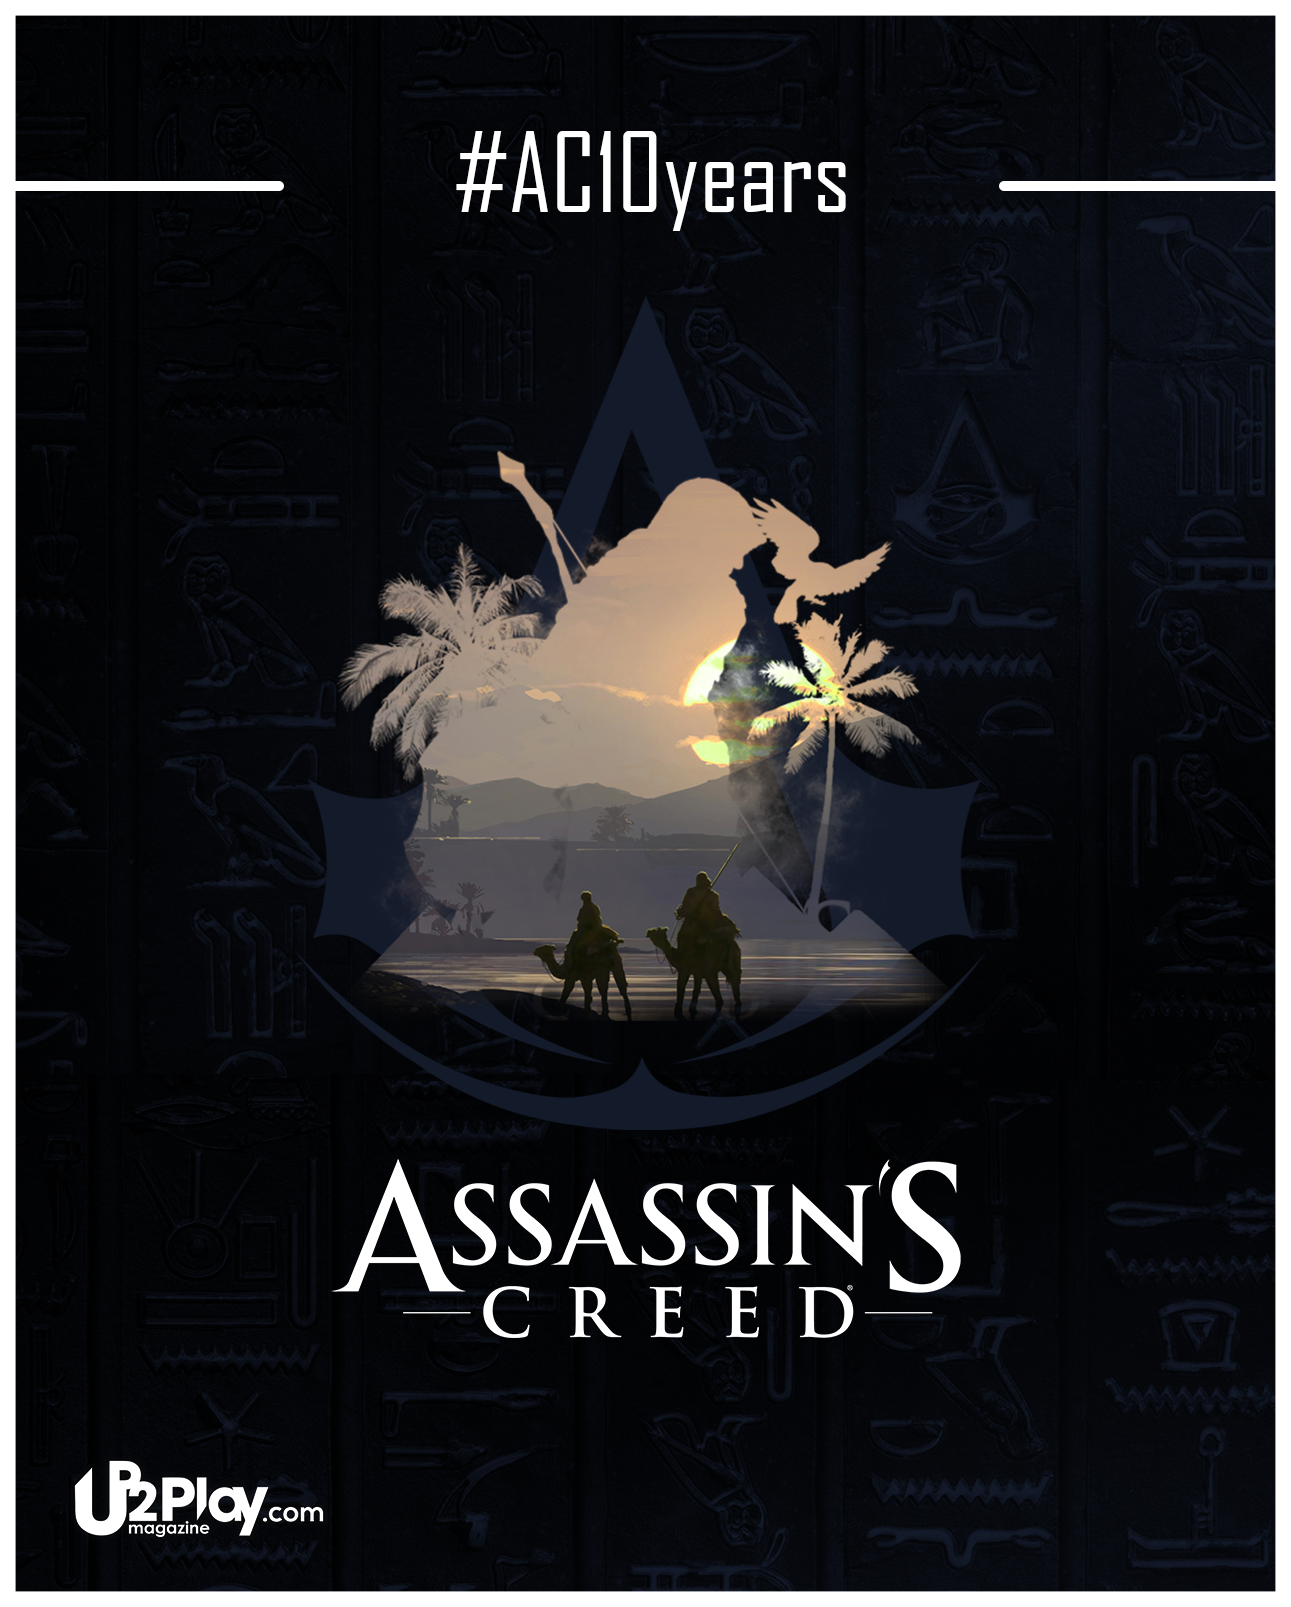 General 1291x1607 Assassin's Creed Assassin's Creed: Brotherhood Assassin's Creed:  Unity Assassin's Creed Syndicate video games Ultra  HD Ubisoft Ubi30